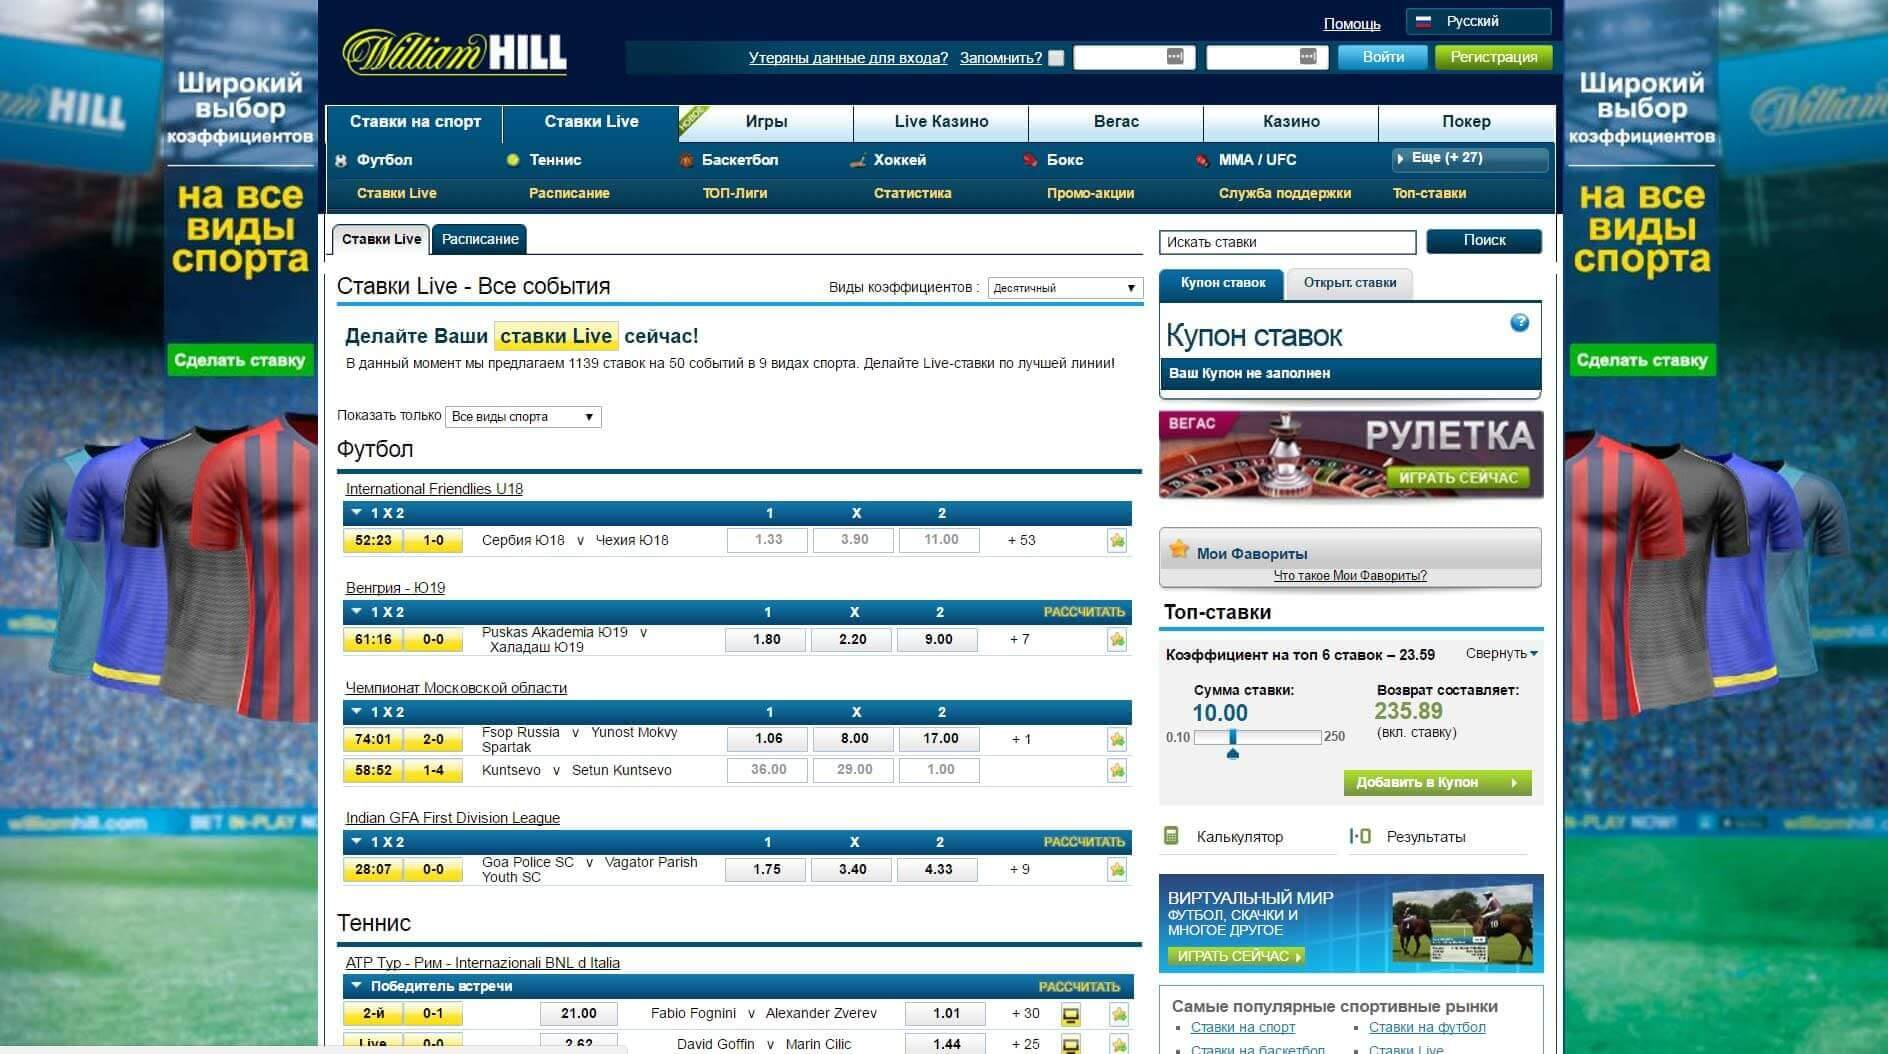 William Hill Букмекерская Контора В Казахстане